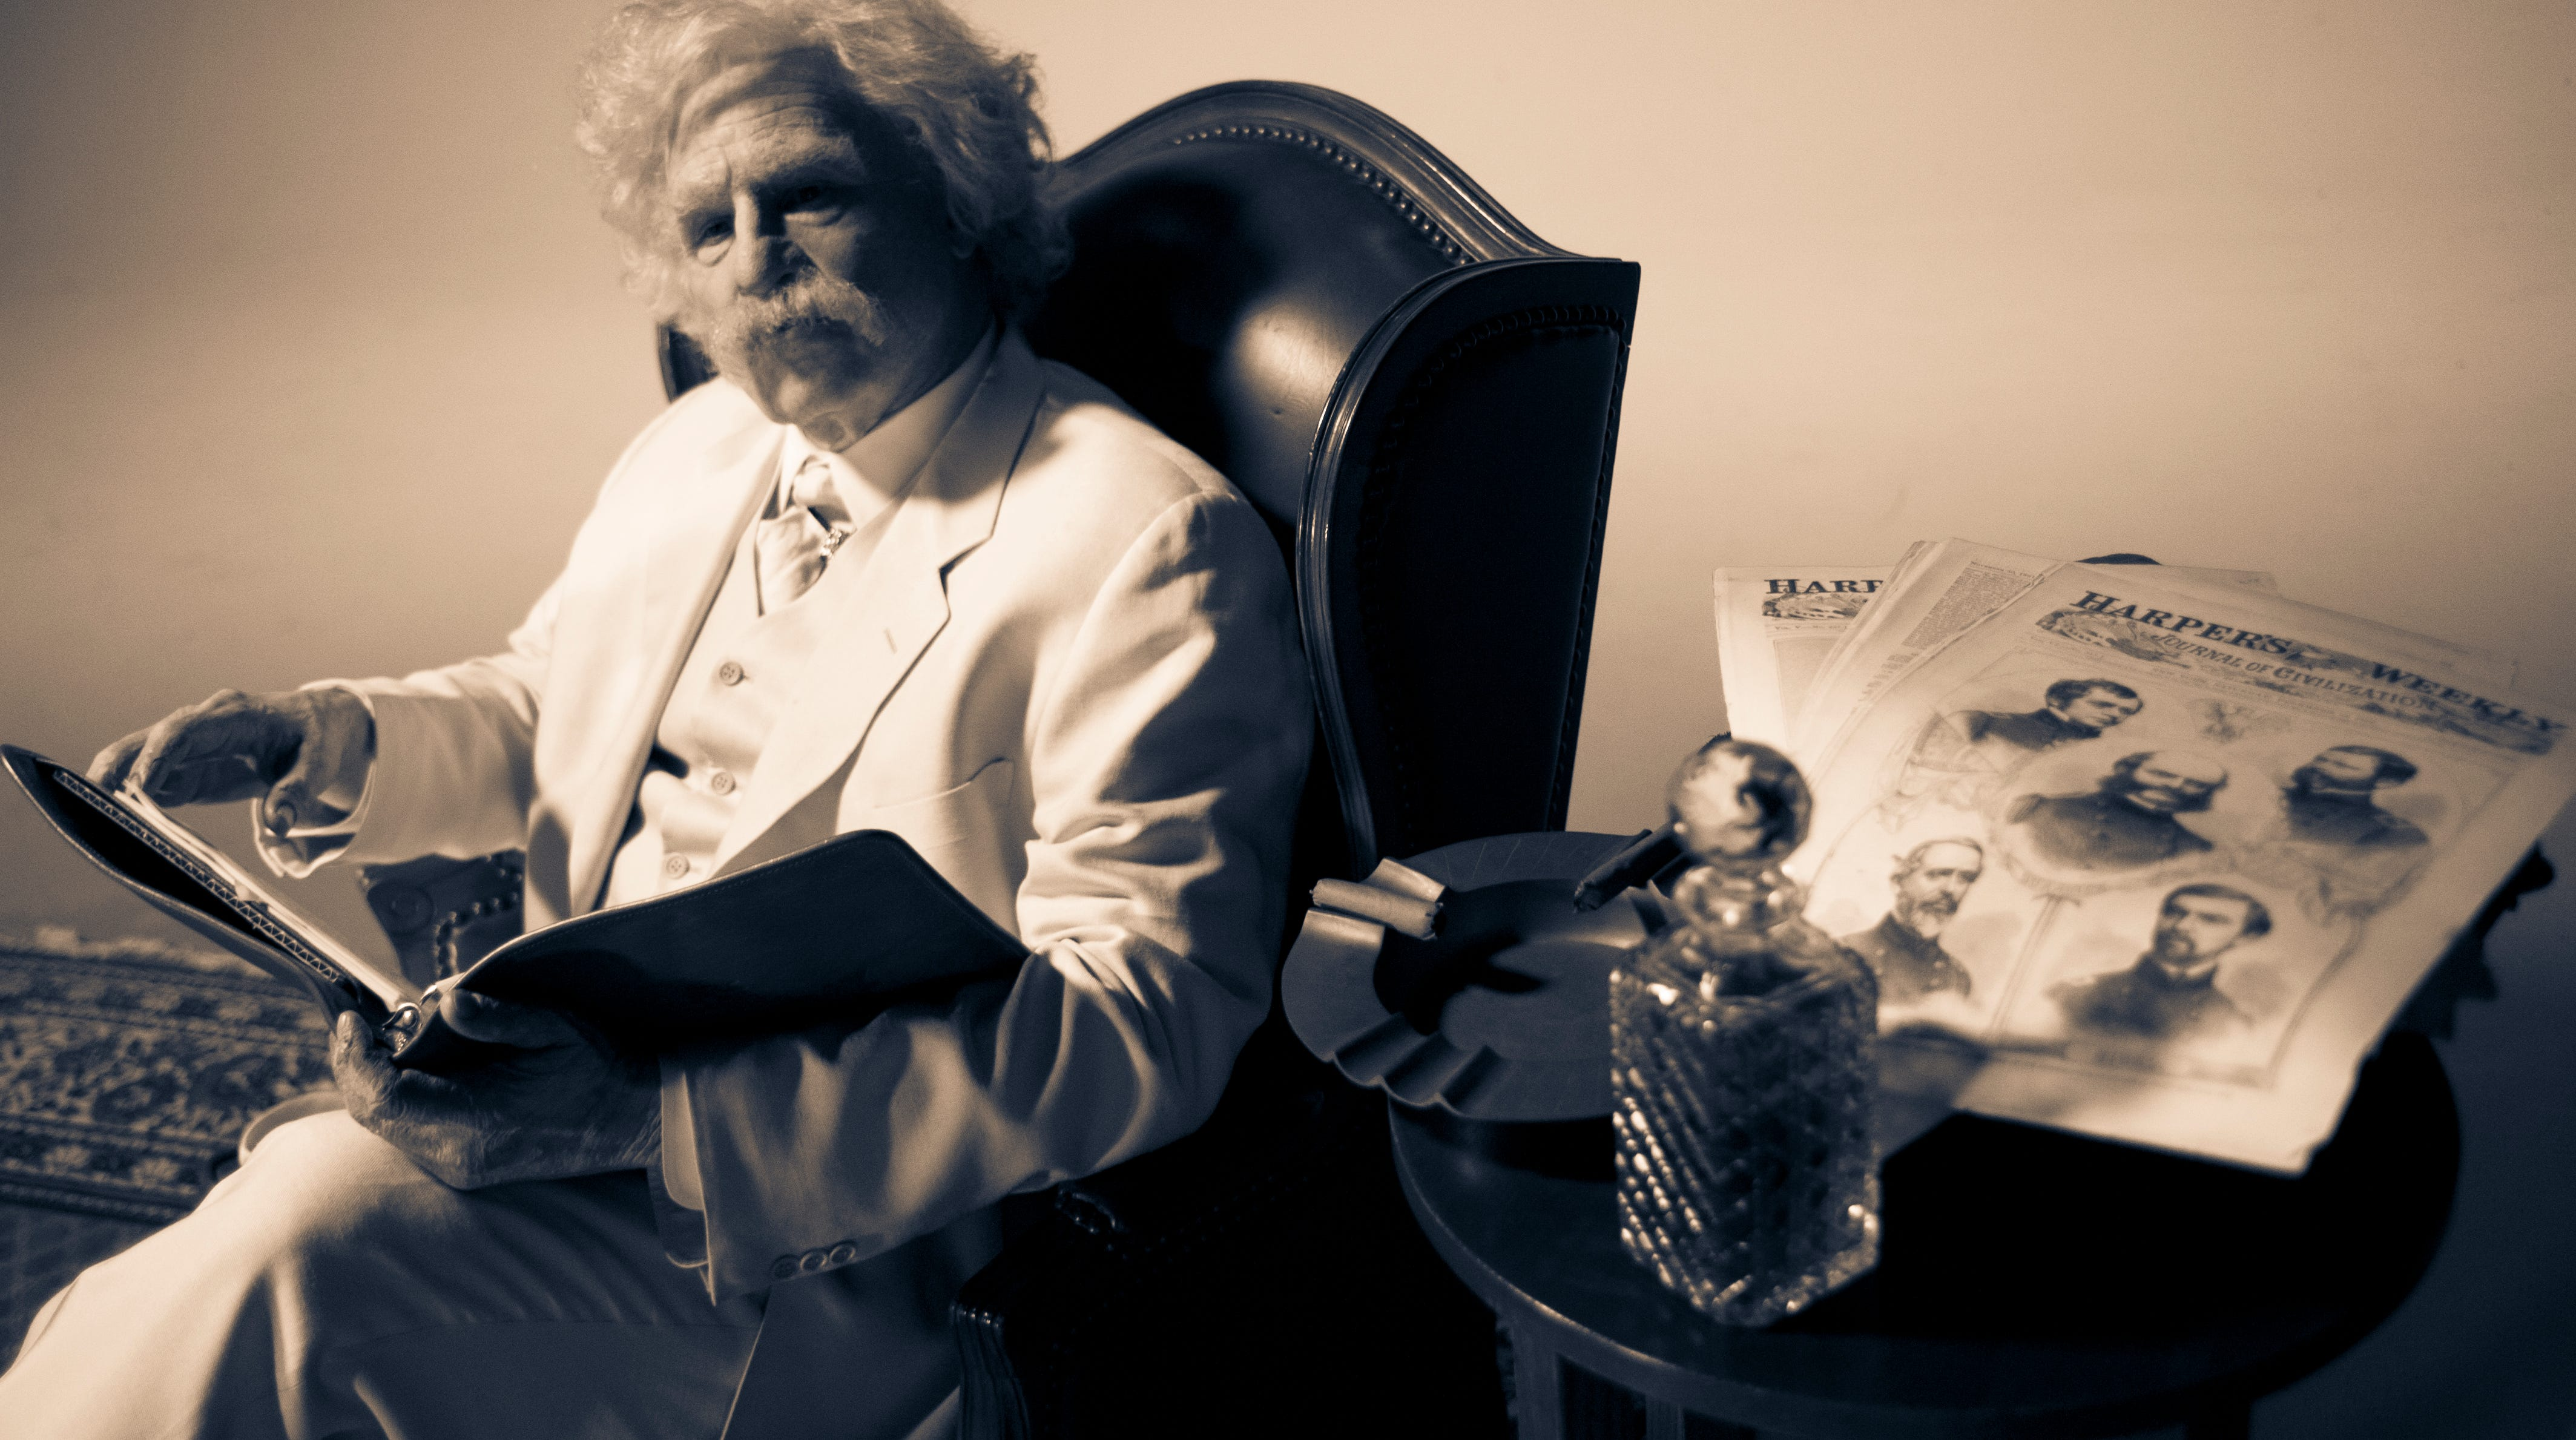 Val Kilmer is shown in this 2011 photograph in costume as the American author Mark Twain. Kilmer will be in Branson Sept. 29 for a screening of his one-man film about Twain. He'll introduce the movie and take questions from the audience afterward.